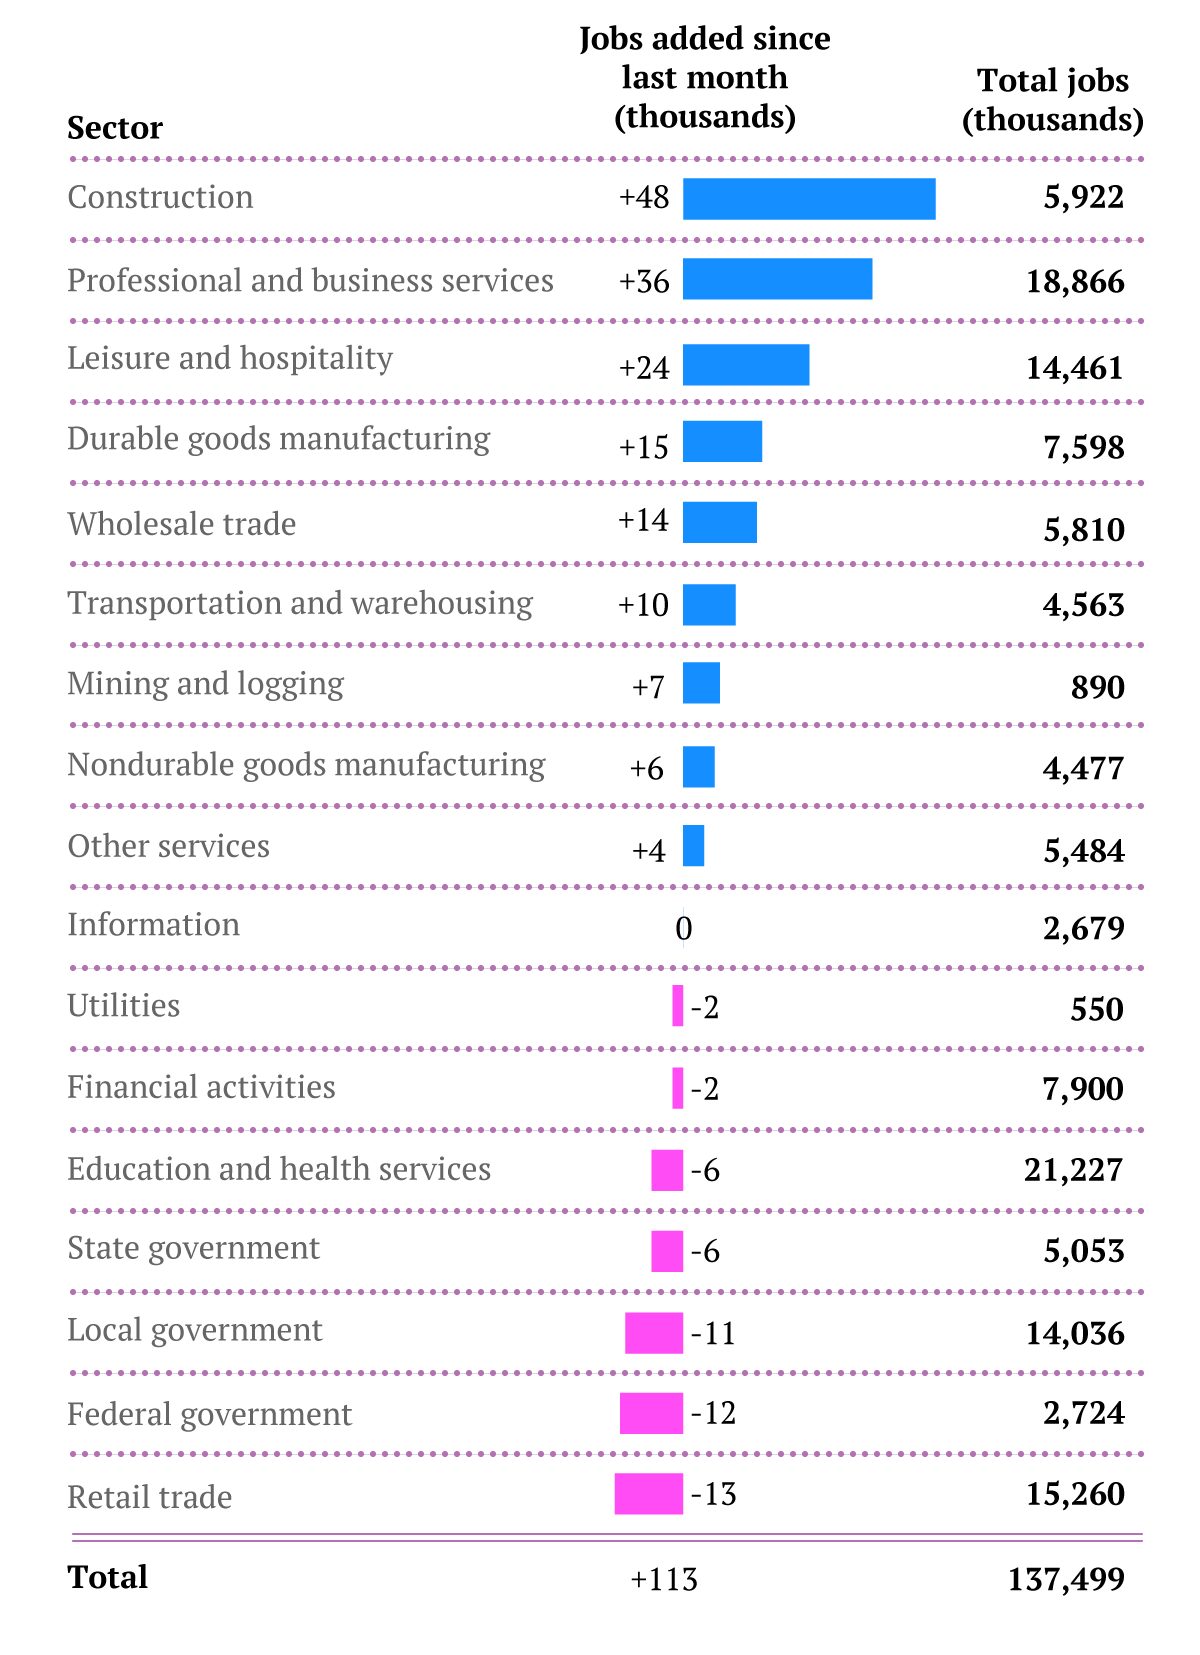 Jobs-by-sector-Jan14